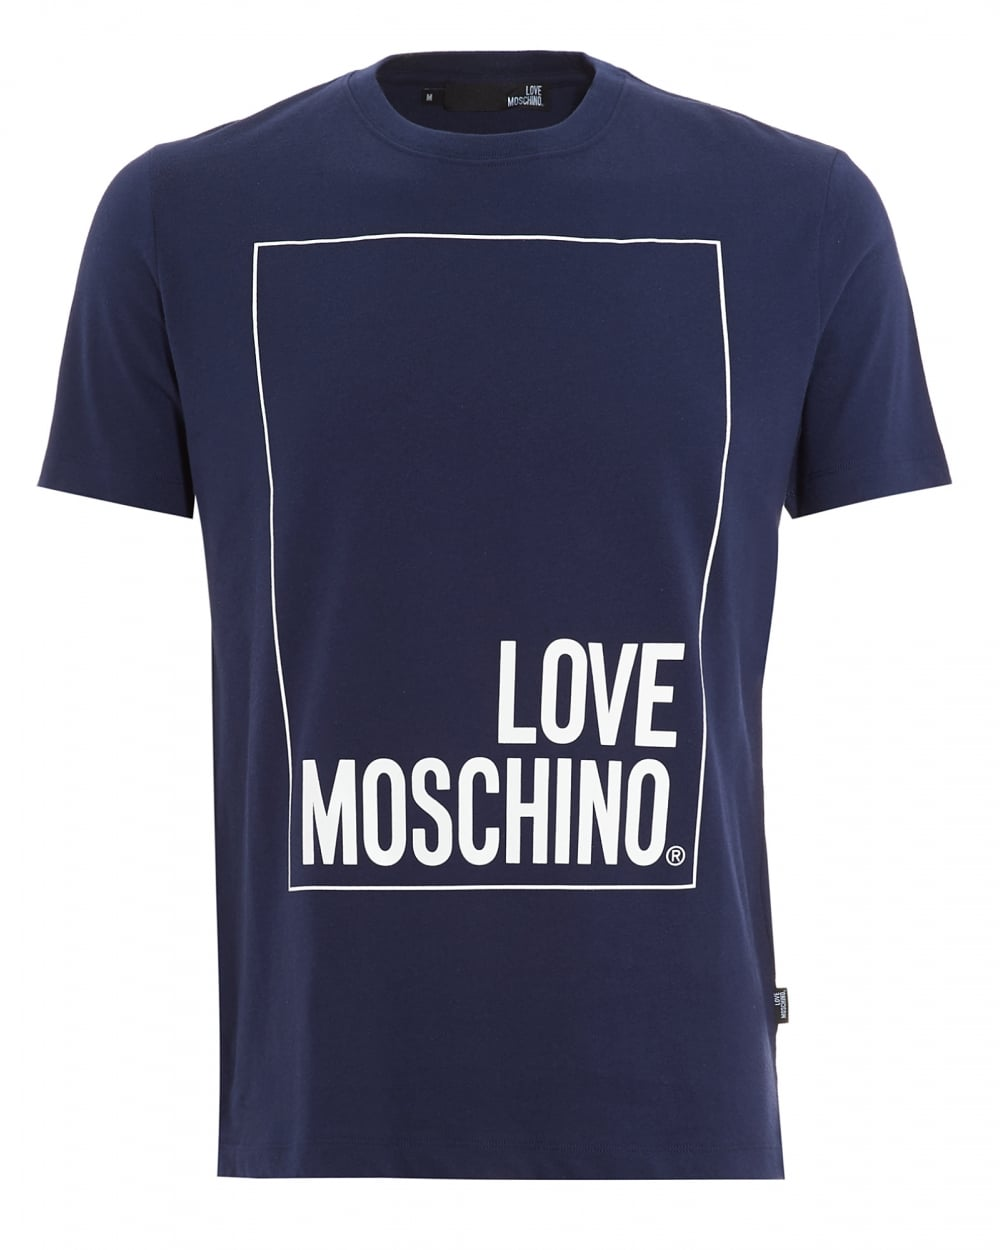 love moschino mens box logo navy t shirt. Black Bedroom Furniture Sets. Home Design Ideas